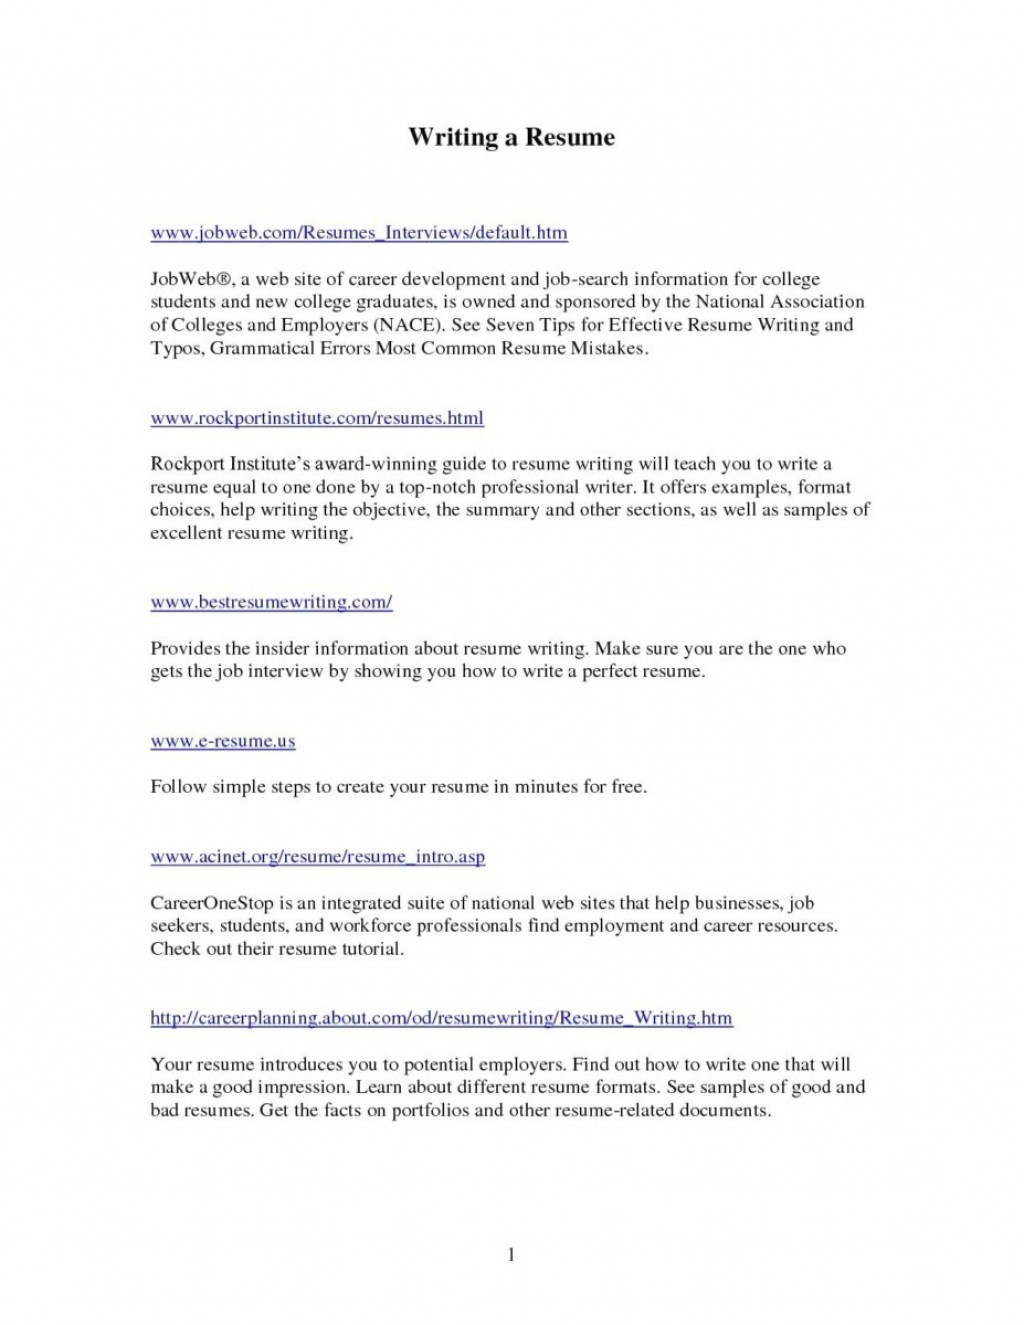 011 Resume Writing Service Reviews Format Best Writers Inspirational Help Professional Of Free Services Research Paper How To Write Apa Wonderful A Outline Style Large